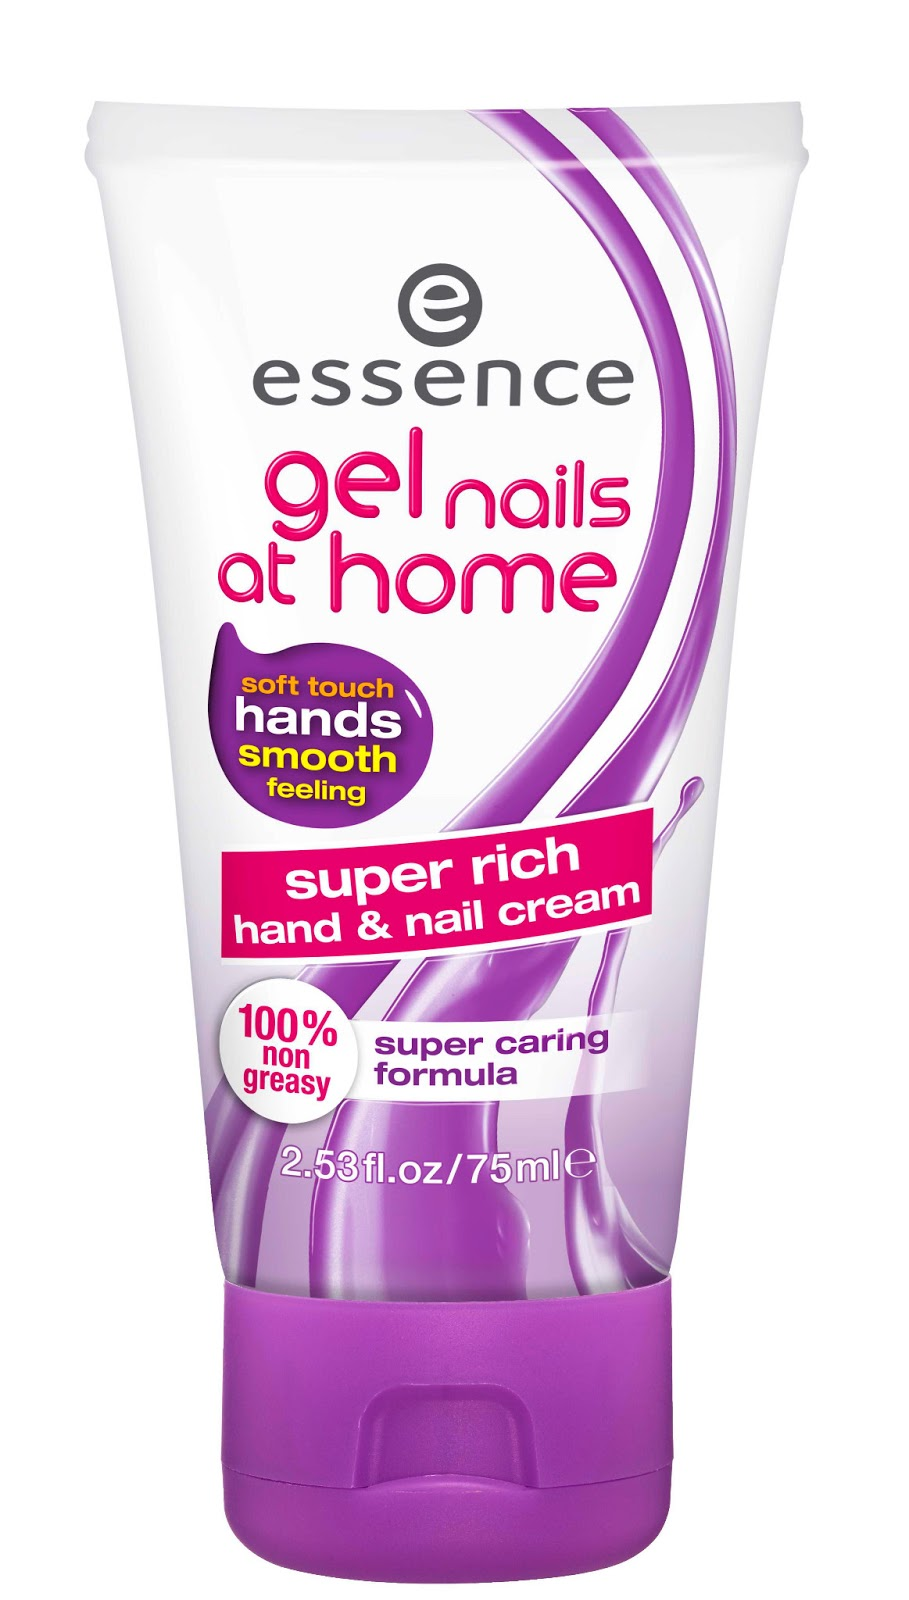 Essence: Anteprima Gel Nails At Home, Fai Diventare Il Tuo